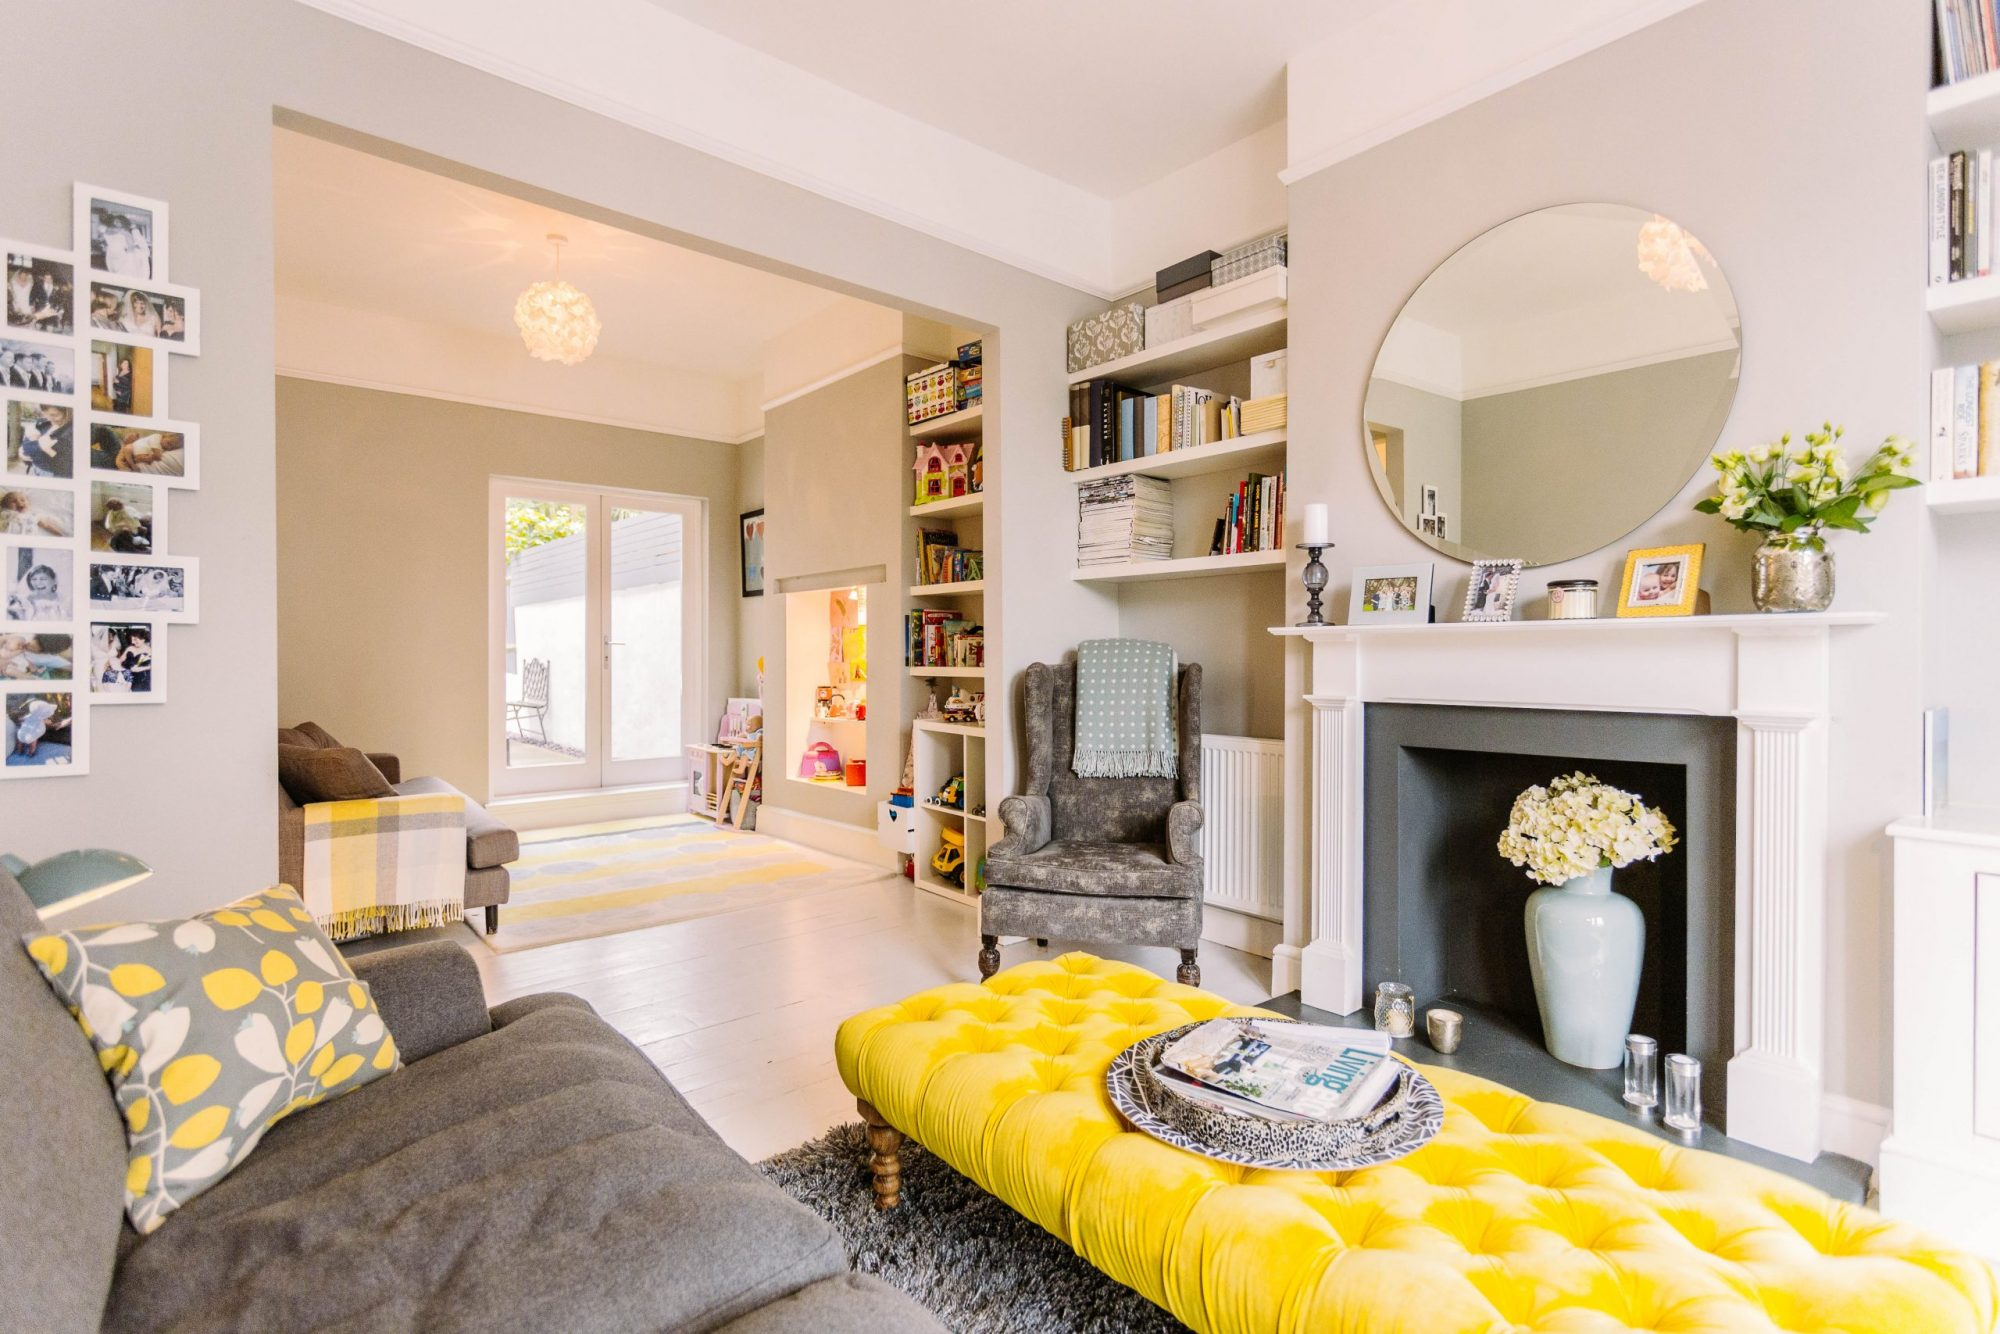 A picture of very cosy looking open plan living room with a bright yellow padded table